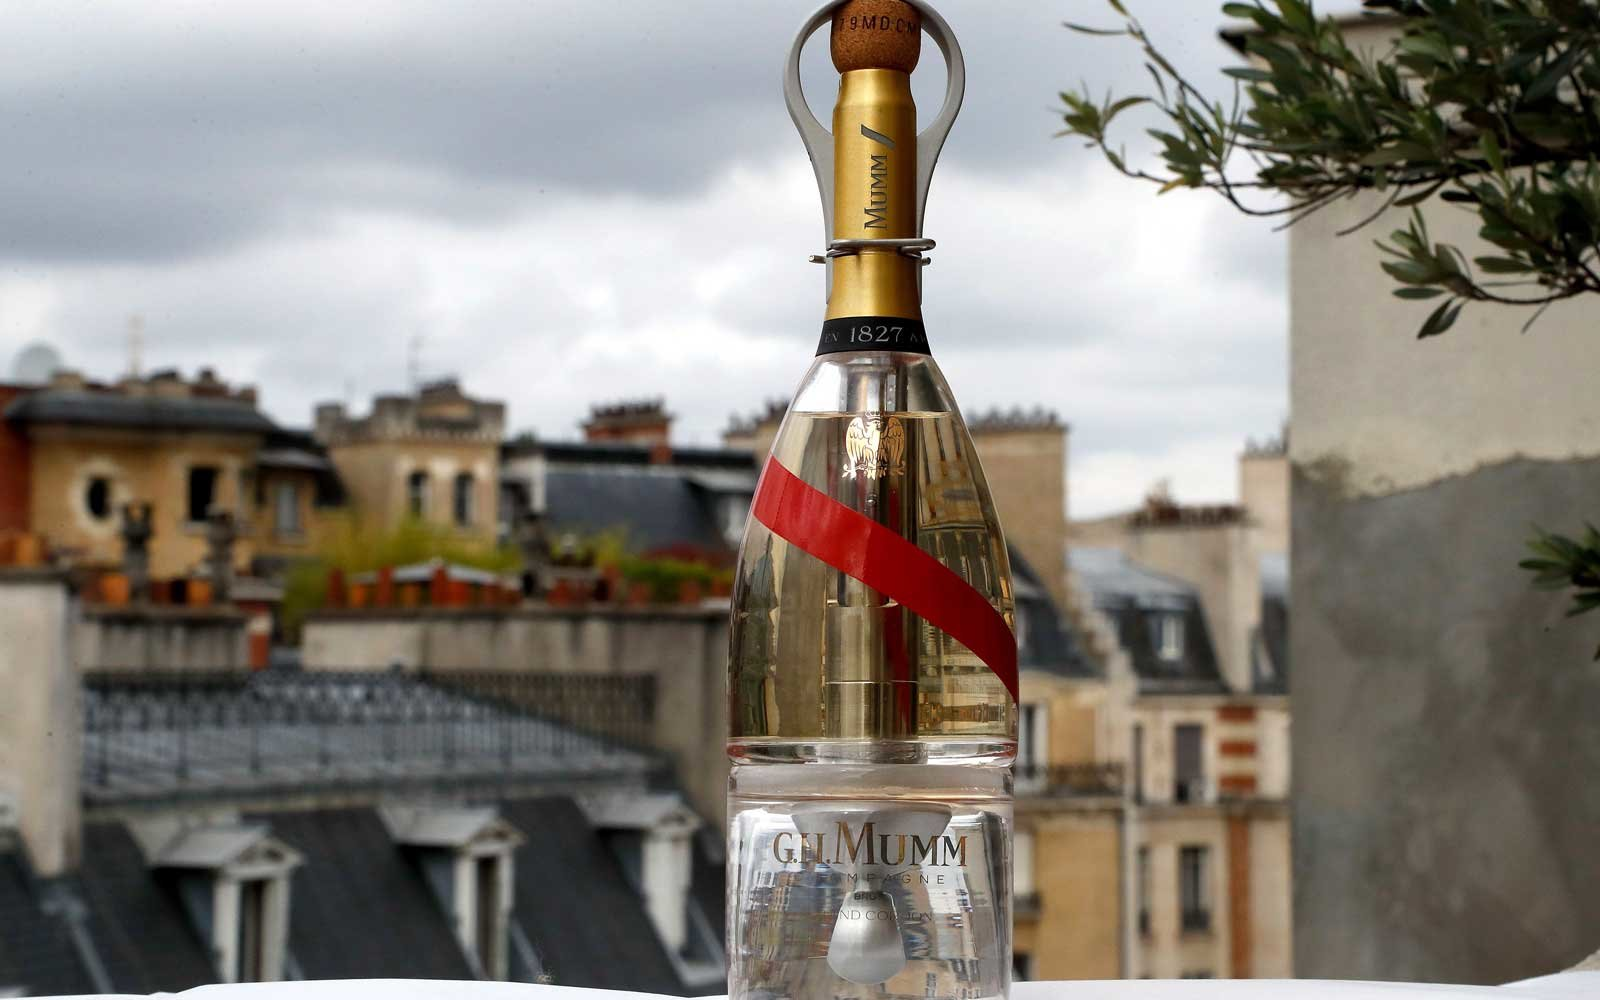 A picture taken on September 6, 2018 in Paris shows a bottle of Mumm Grand Cordon Stellar champagne, designed by French Interior designer Octave de Gaulle, that will be drank by space tourists using a container bottle adapted to pour the bubbly liquid in